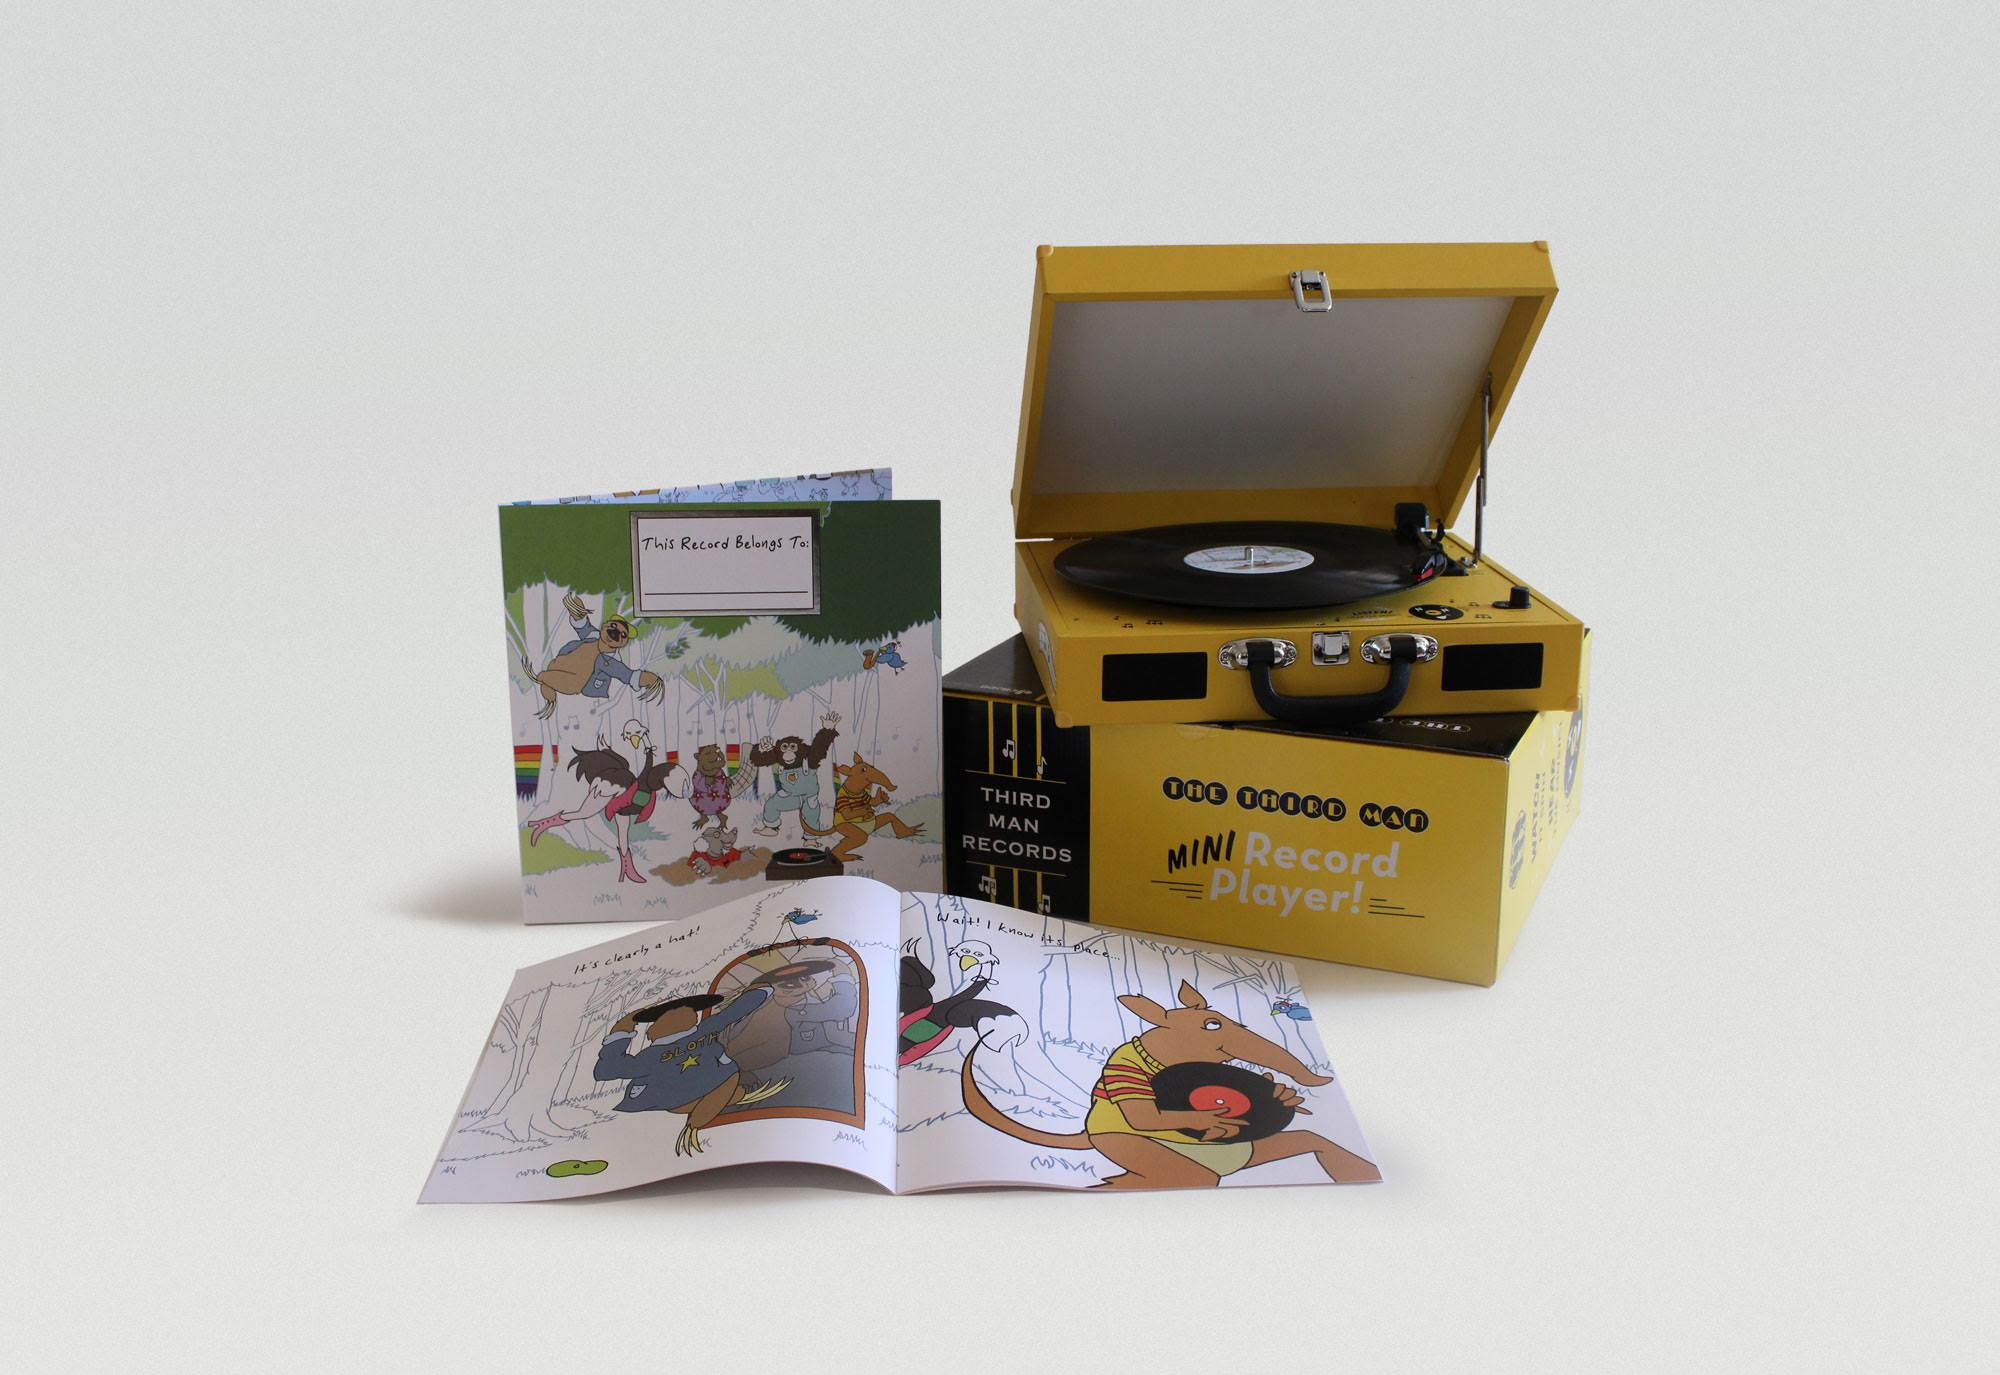 third man records childrens vinyl record player this record belongs to